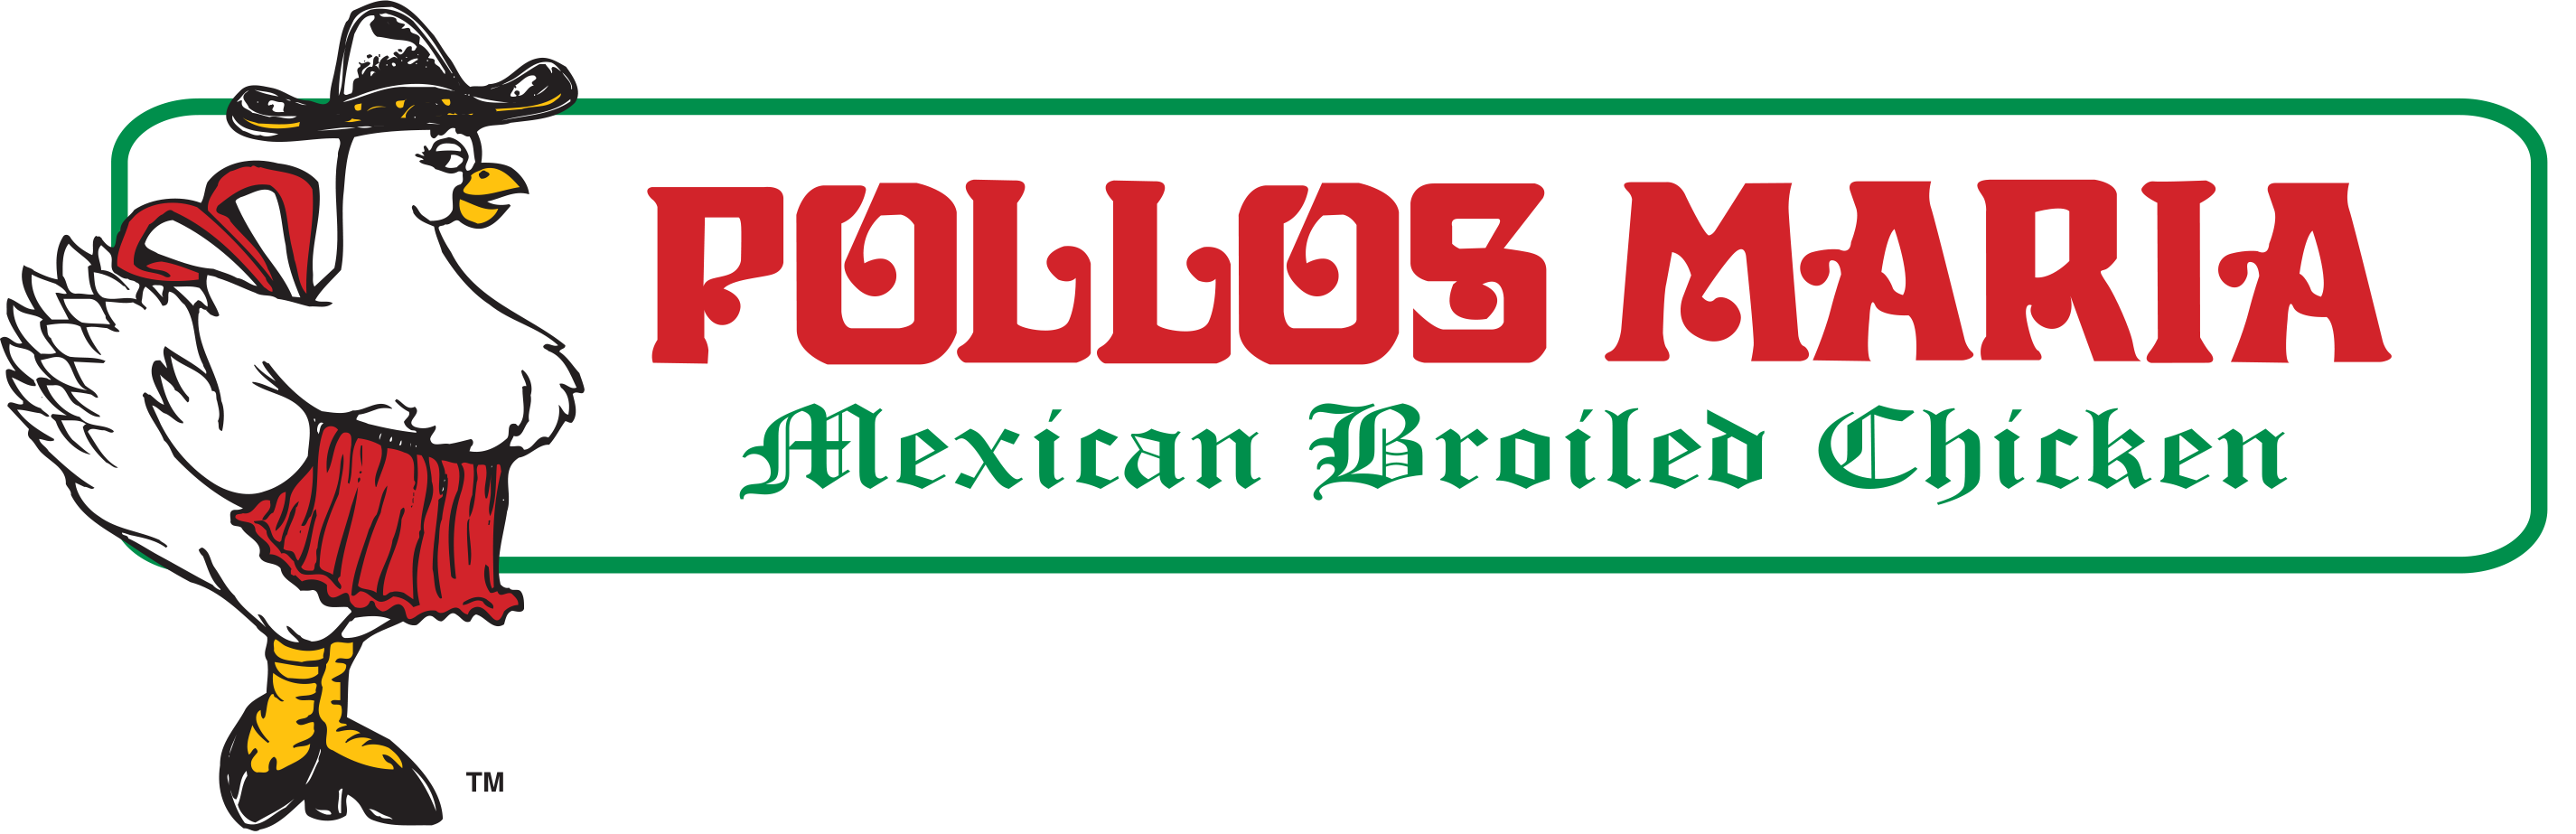 Pollos Maria Mexican Food